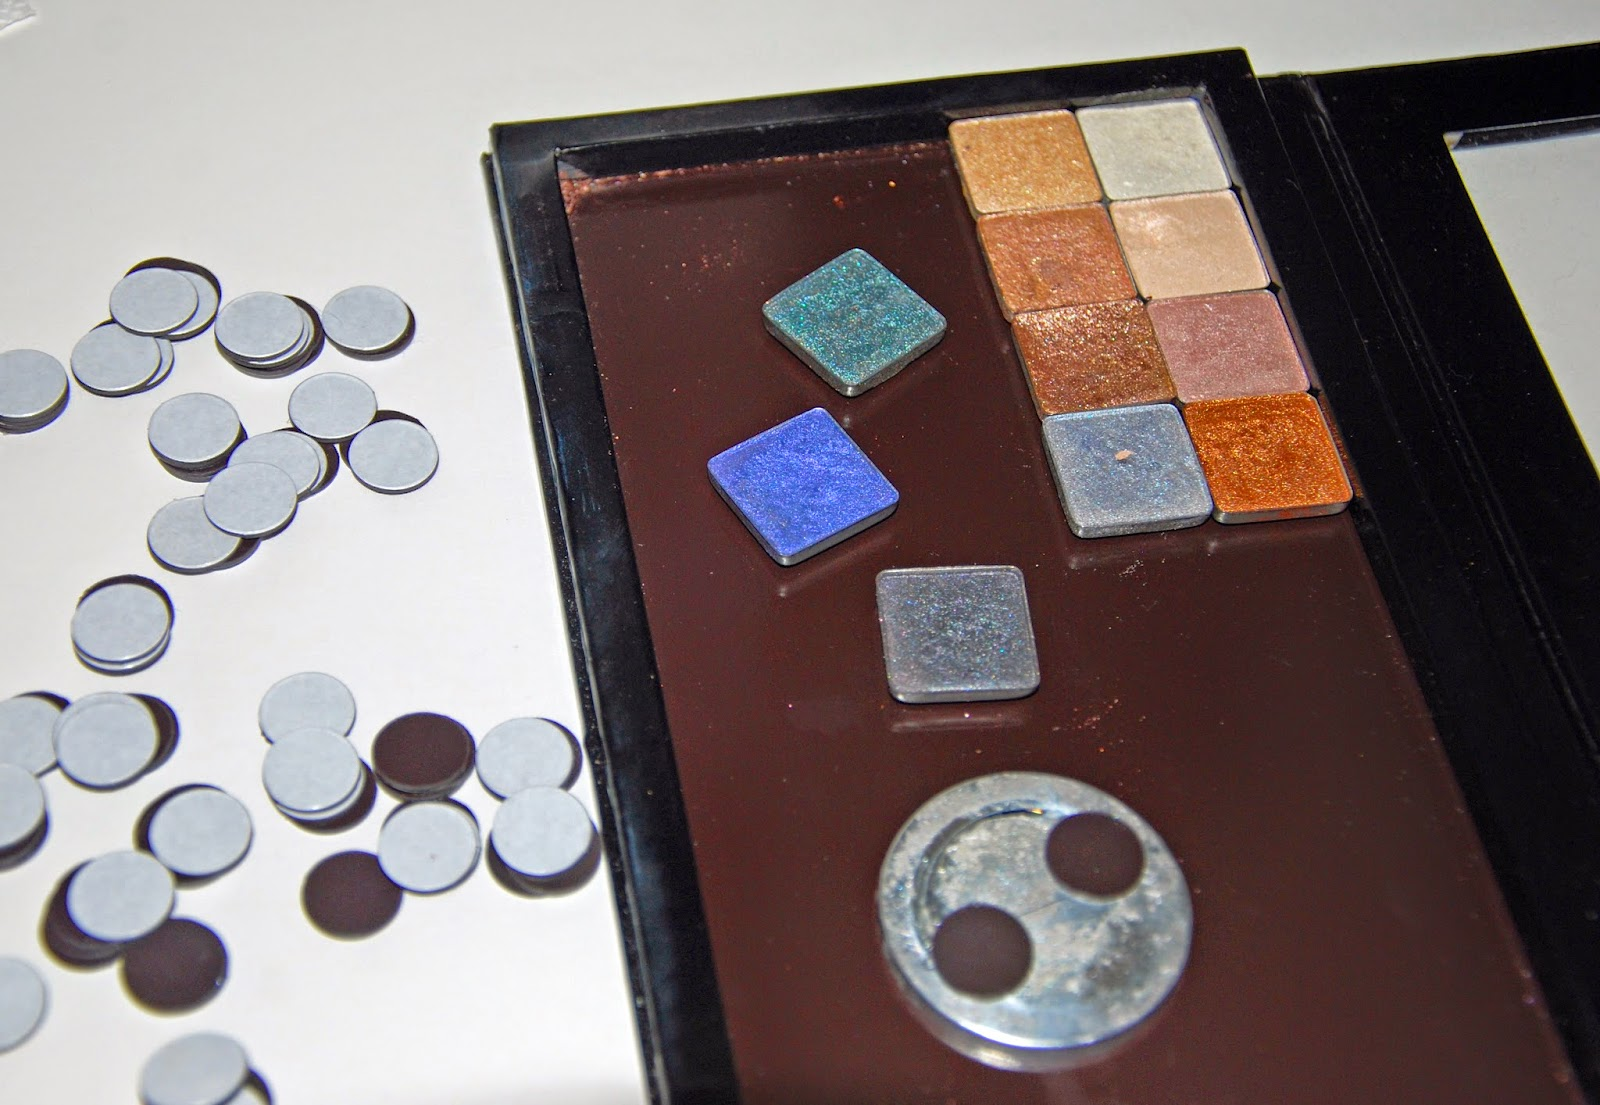 DIY Eyeshadow Palette - Magnets on Pans